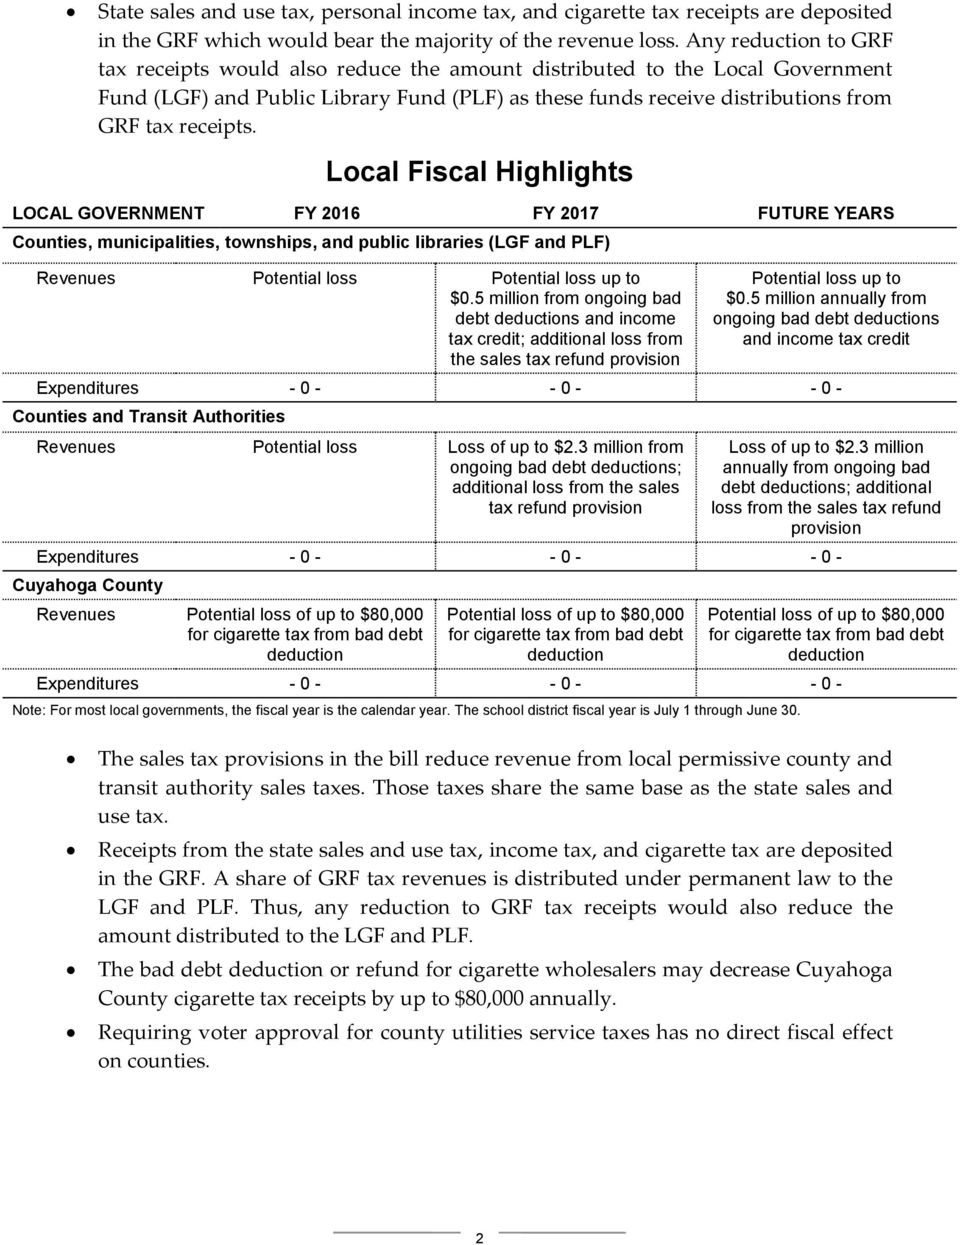 Local Fiscal Highlights LOCAL GOVERNMENT FY 2016 FY 2017 FUTURE YEARS Counties, municipalities, townships, and public libraries (LGF and PLF) Revenues Potential loss Potential loss up to $0.